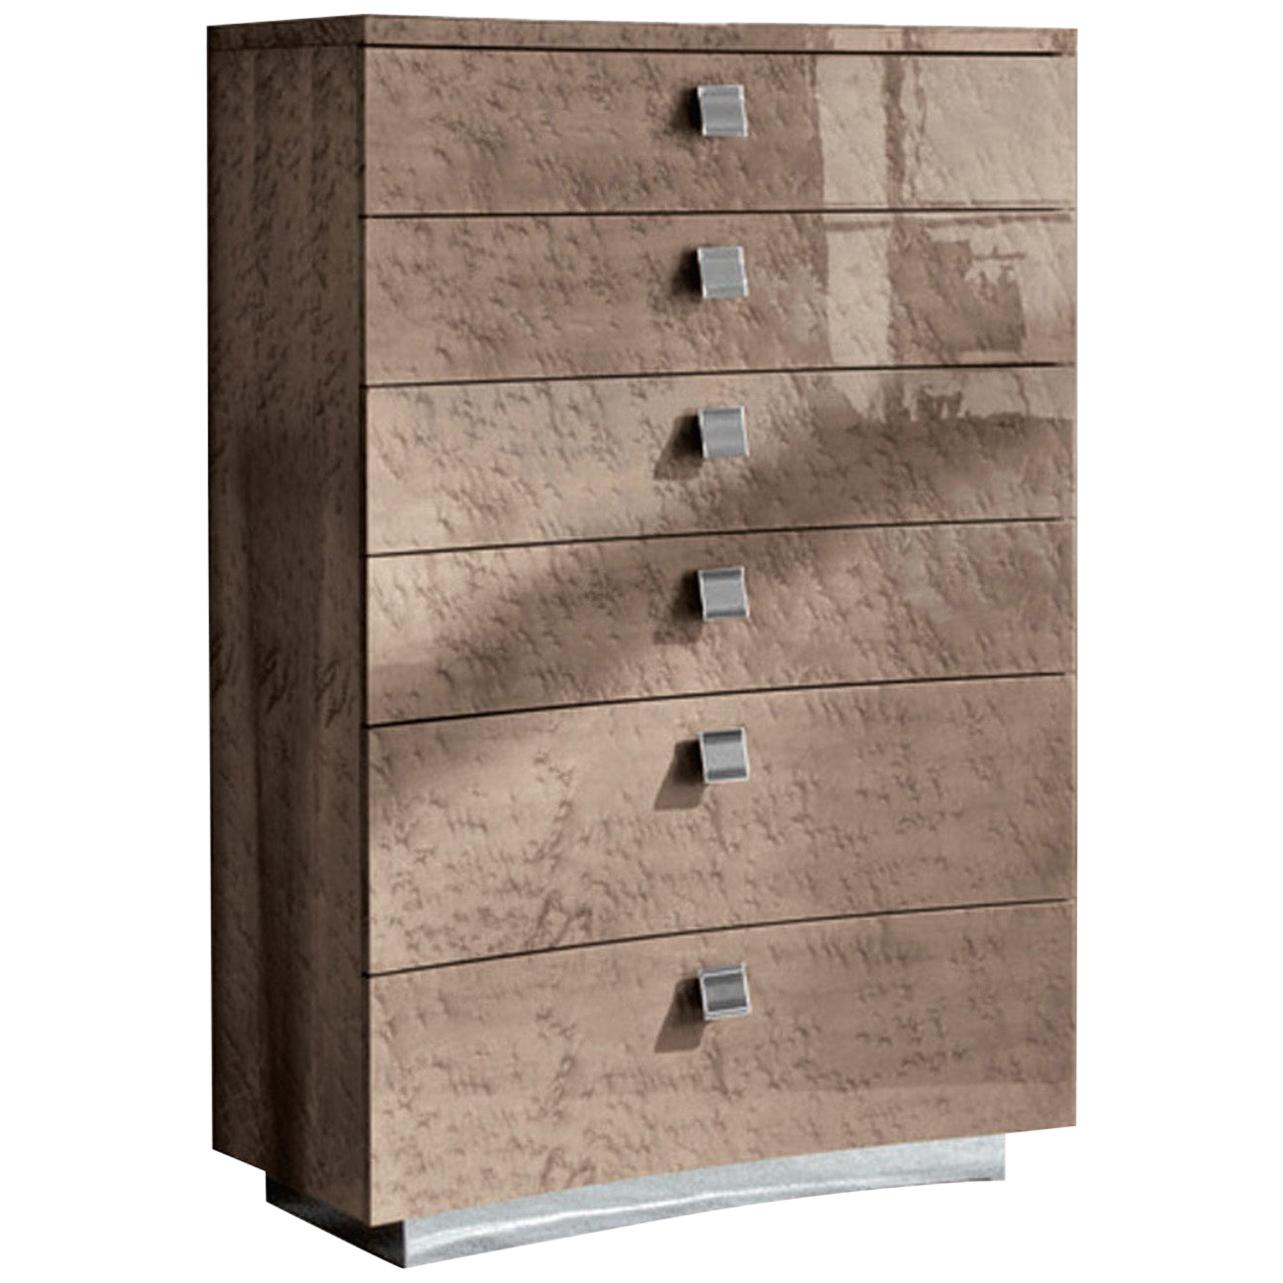 Giorgio USA Collection Bird's-Eye Maple Chest of Drawers in High Gloss Finish